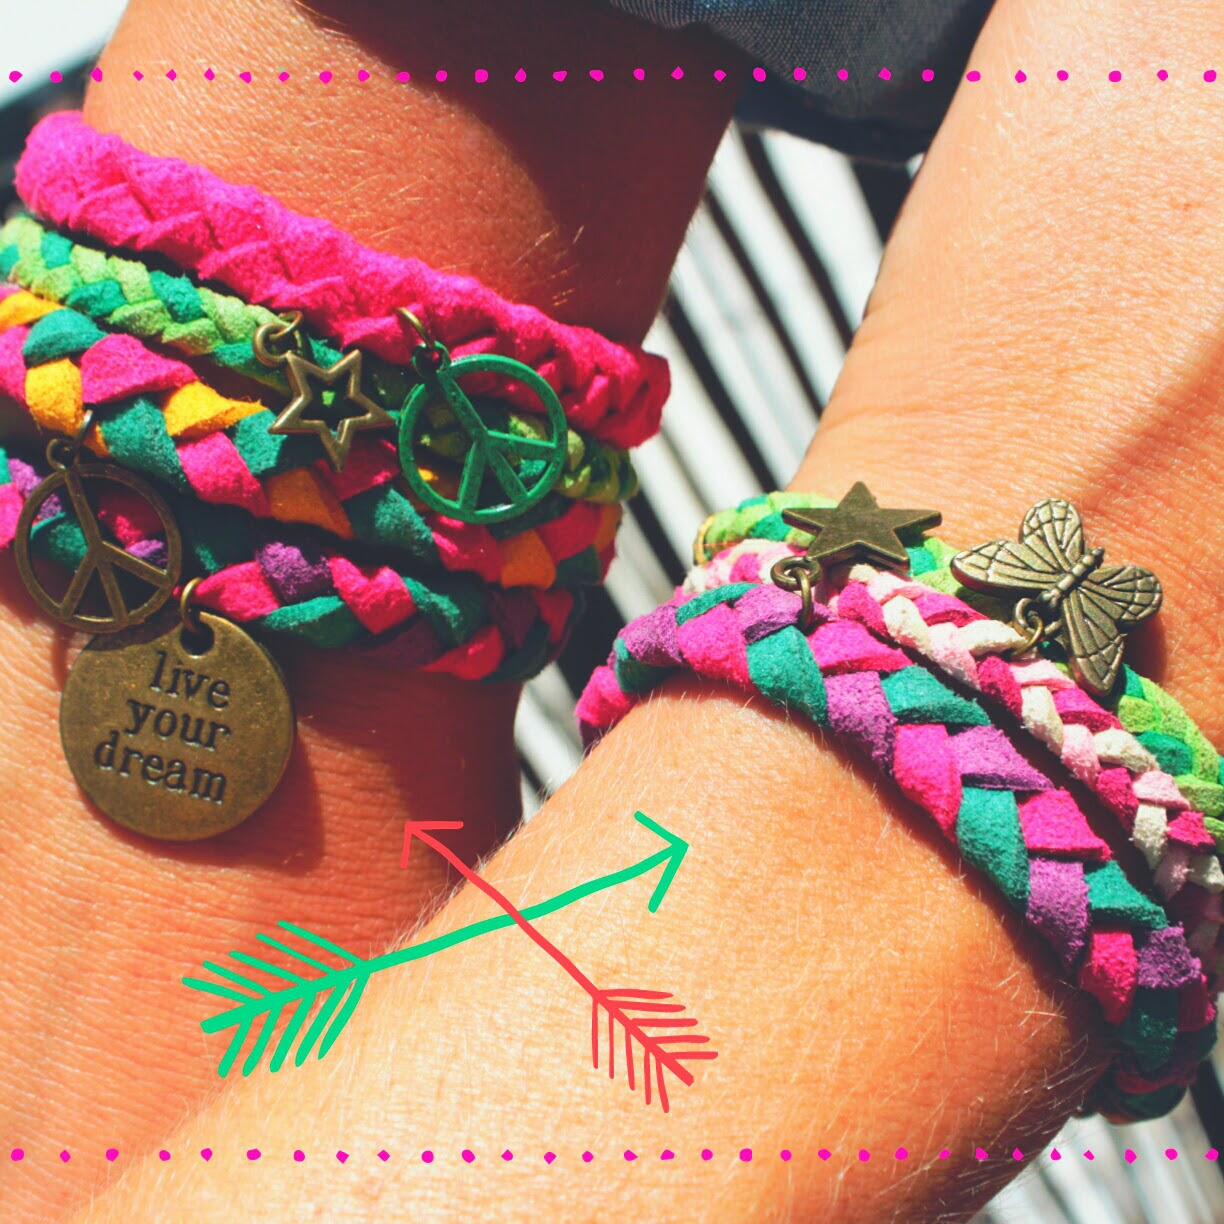 pulseras happy uky live your dream peace paz estrella mariposa